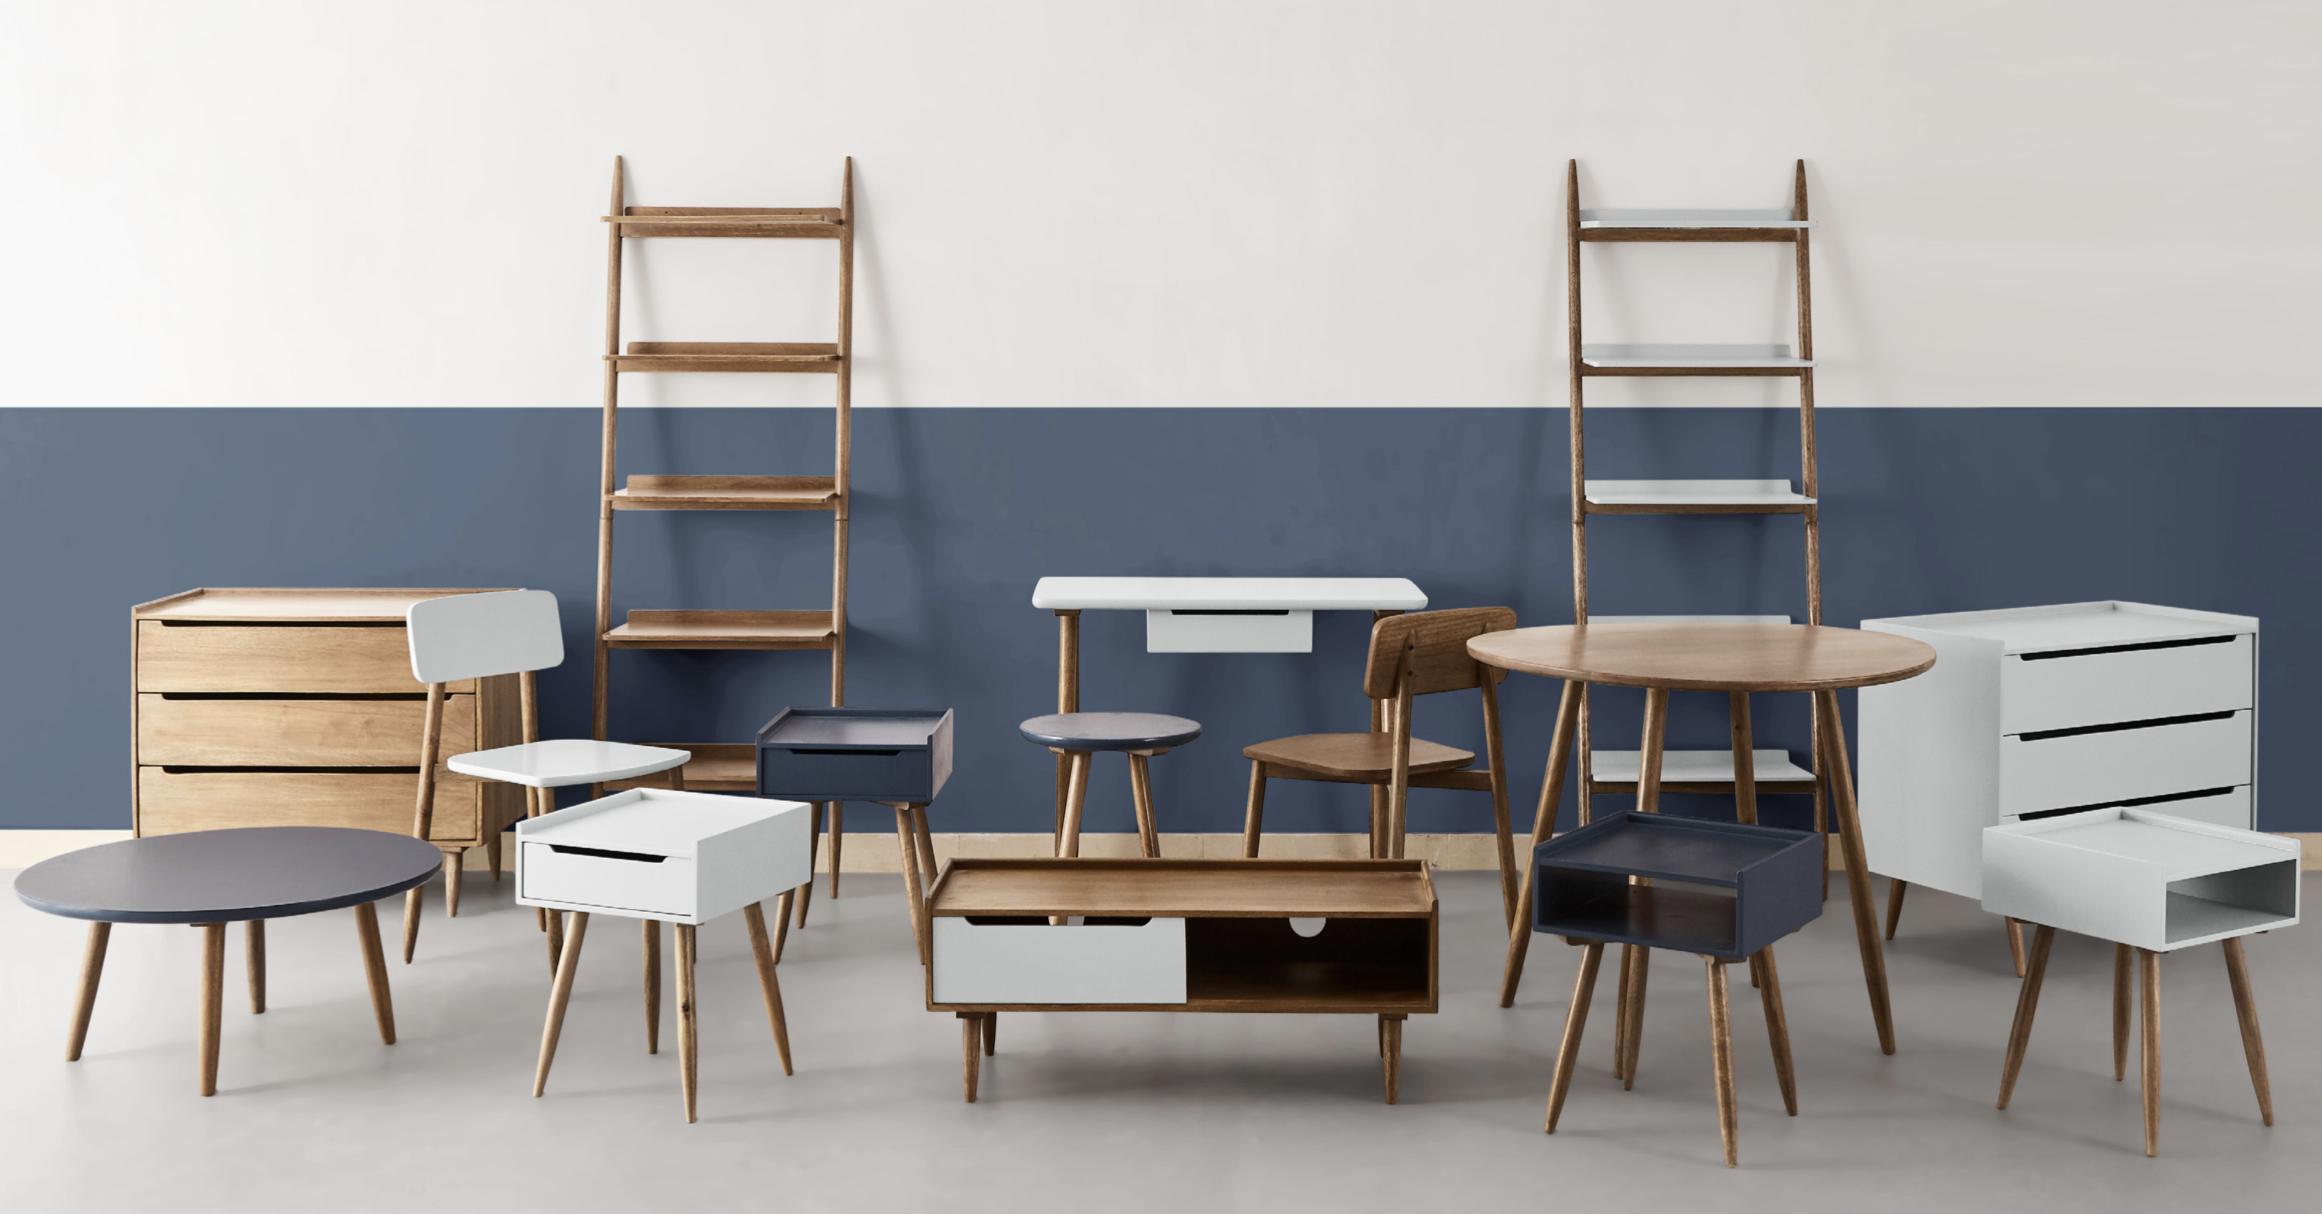 Swoon launches Nomadic furniture collection for renters